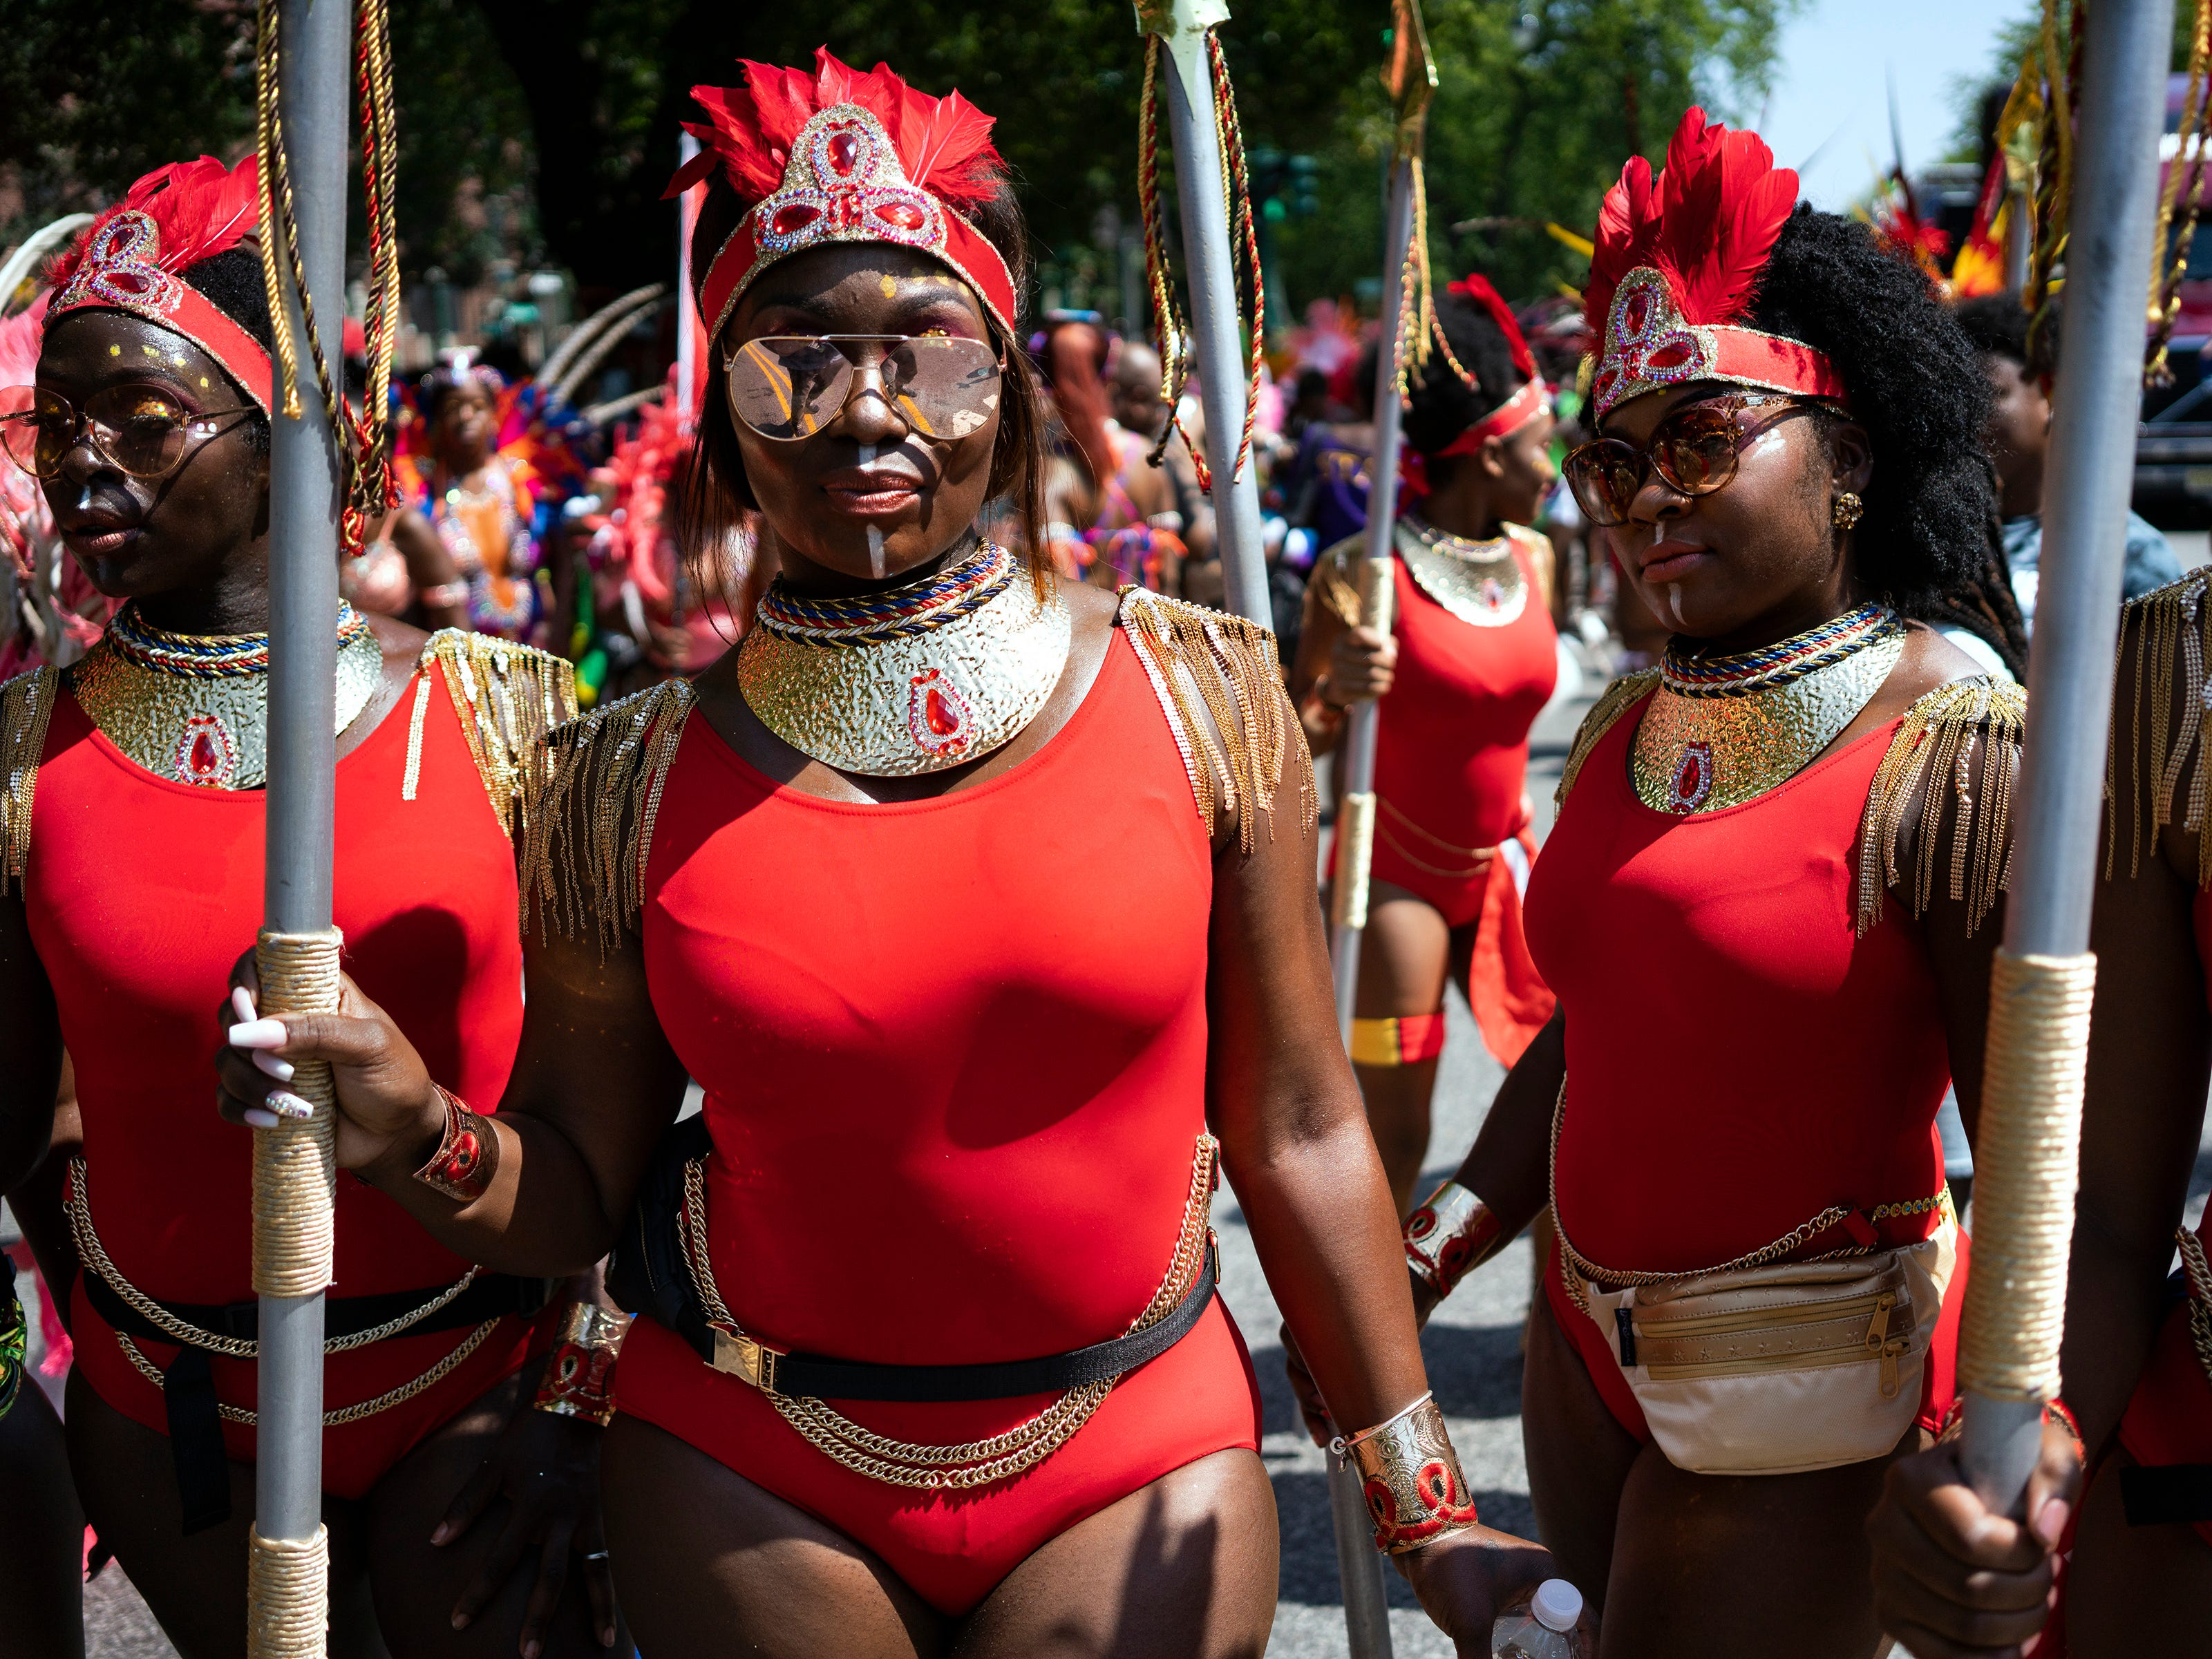 Participants walk along with their parade unit during the West Indian American Day Parade in the Brooklyn borough of New York, Monday, Sept. 3, 2018. New York's Caribbean community has held annual Carnival celebrations since the 1920s, first in Harlem and then in Brooklyn.